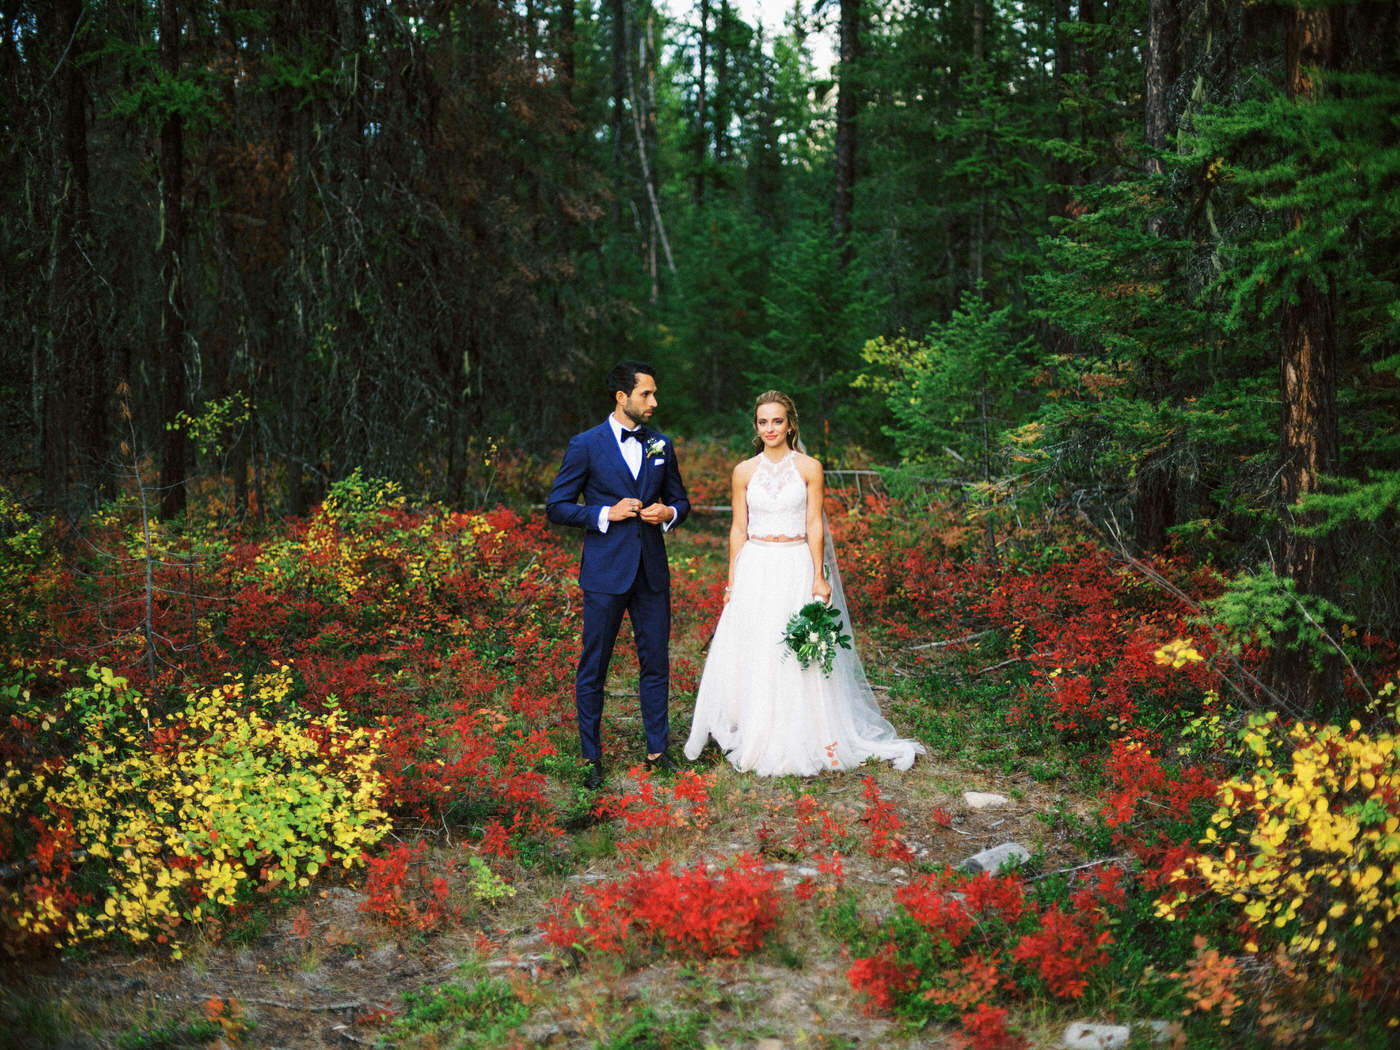 147-pacific-northwest-wedding-photography-by-ryan-flynn.jpg